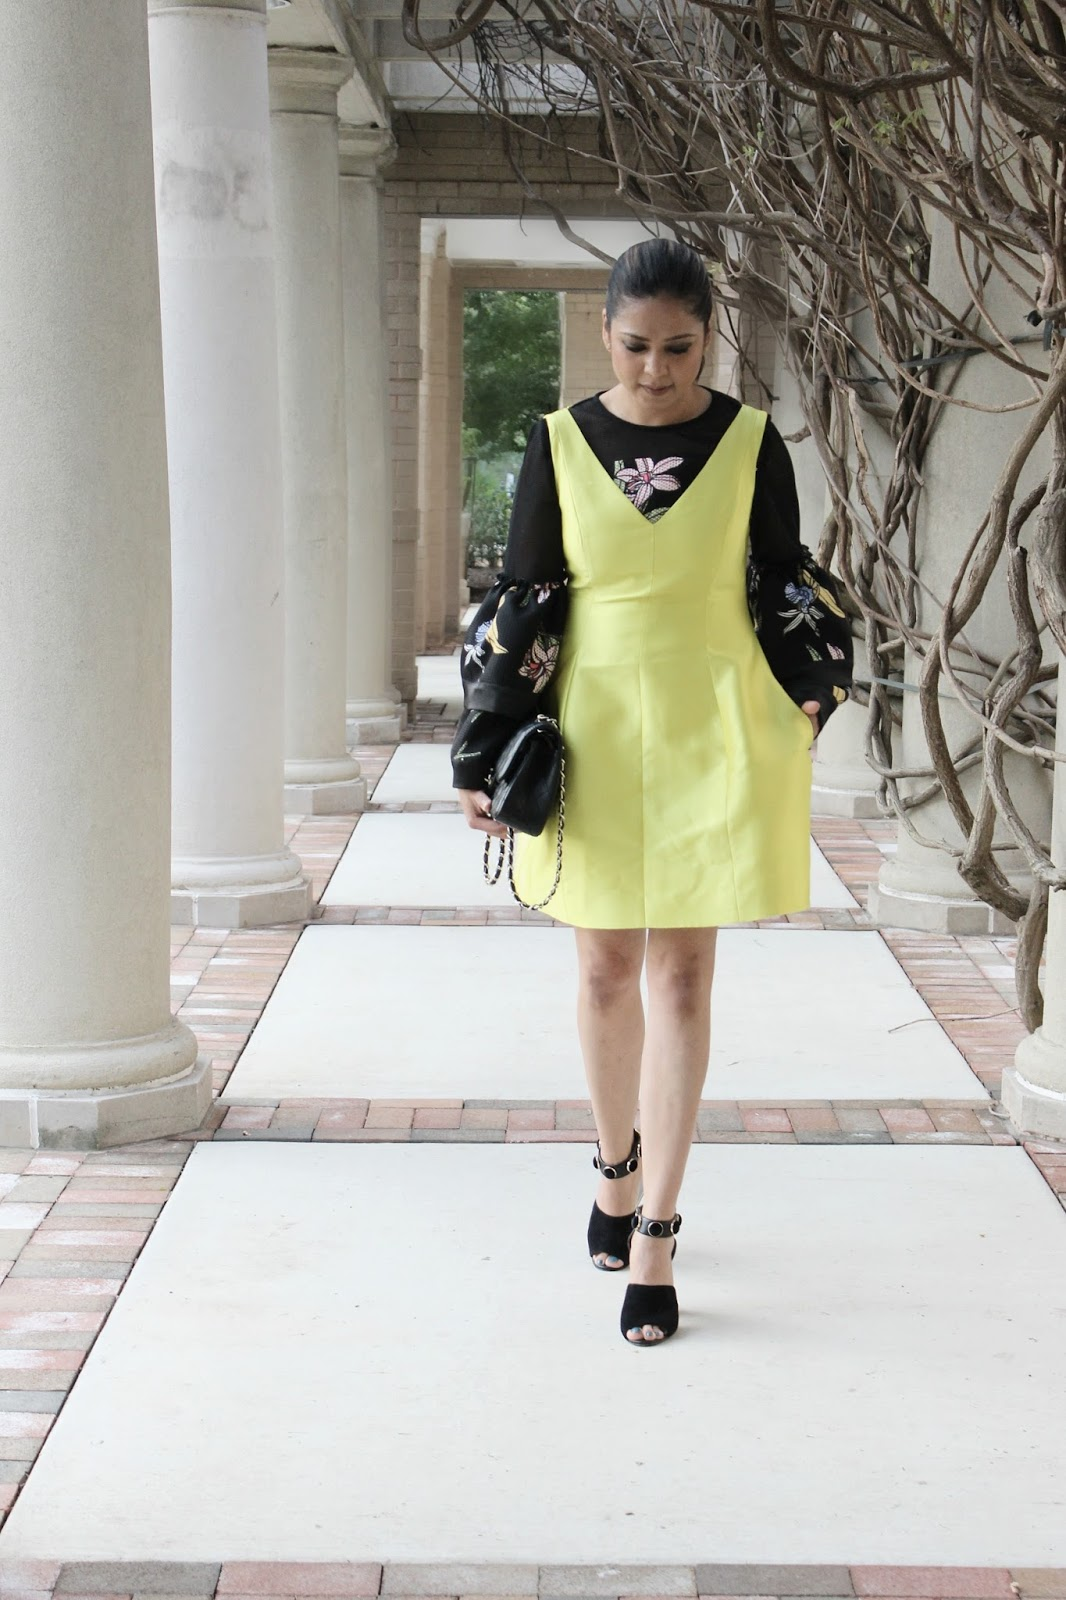 how to layer dress over top, bell sleeves printed blouse, chartreuse kate spade silk dress, kat maconie sandals, patrizia luca milano top, party outfit, fashion show, myriad musings, ootd, street style, saumya shiohare